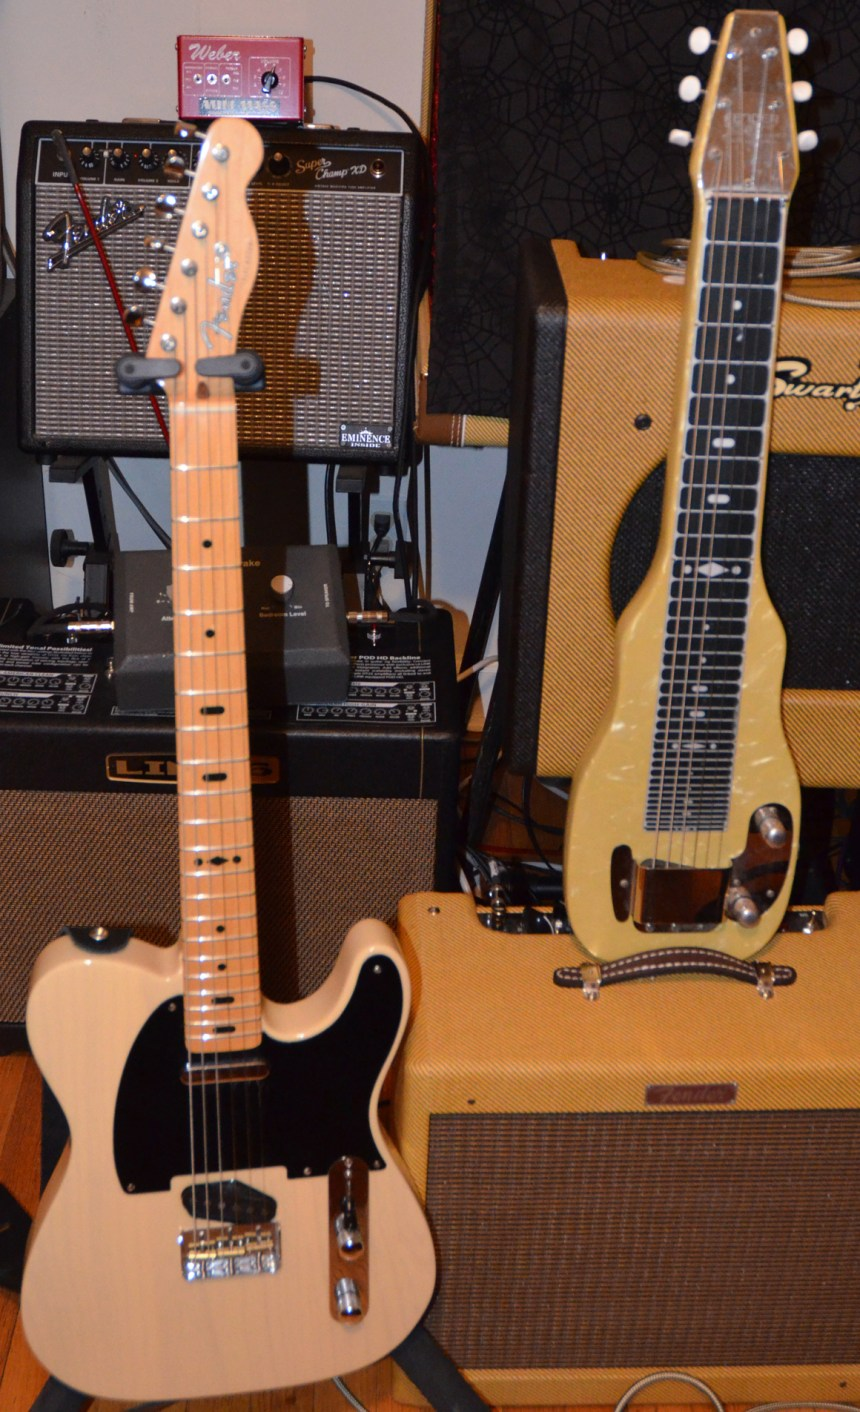 GE Smith Telecaster & 1950s Fender Champion Lap Steel